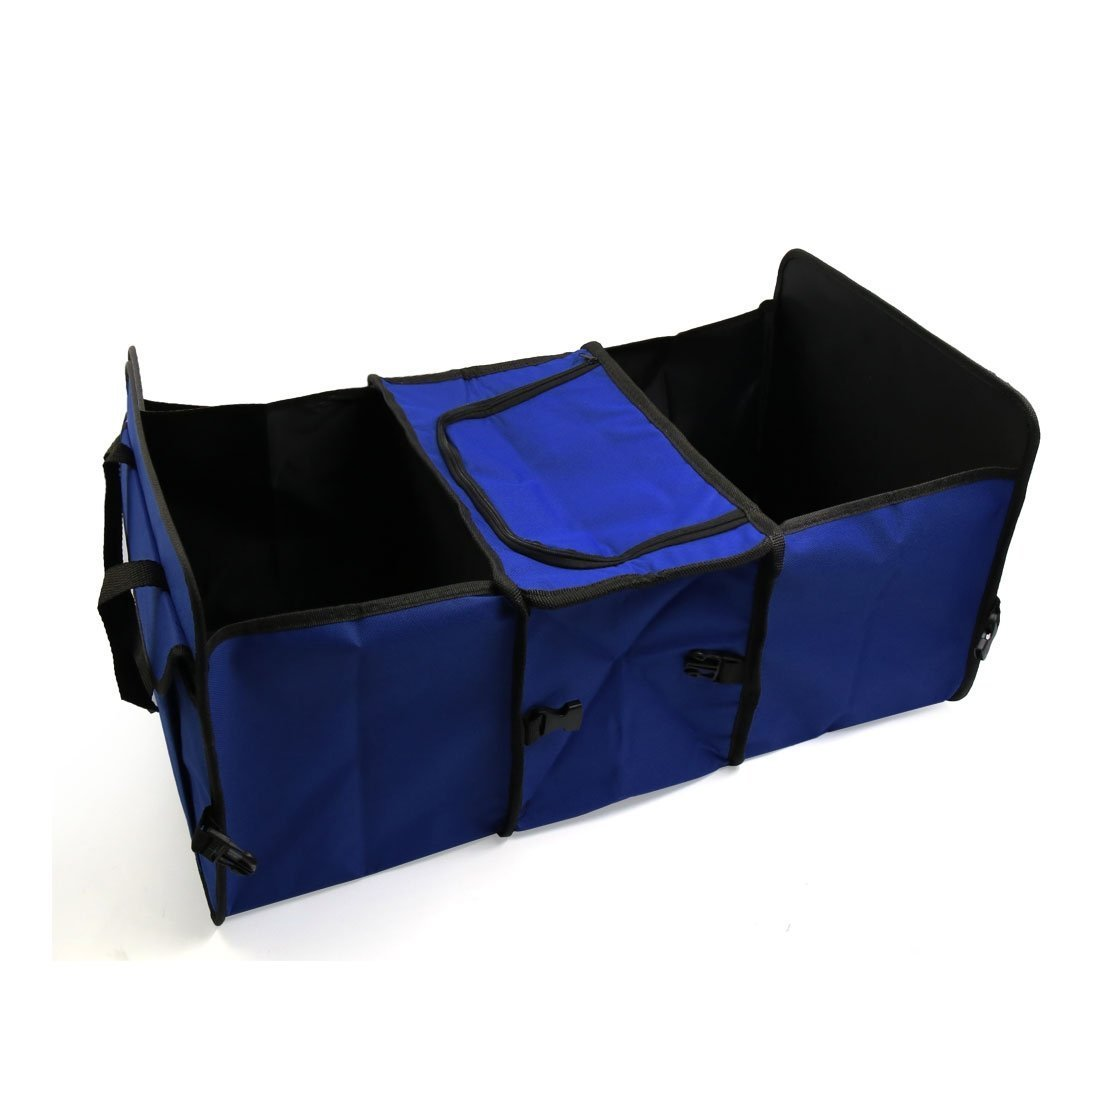 SKRTEN Multi-functional Folding Trunk Car Boot Organizer Bag with 3 Compartments